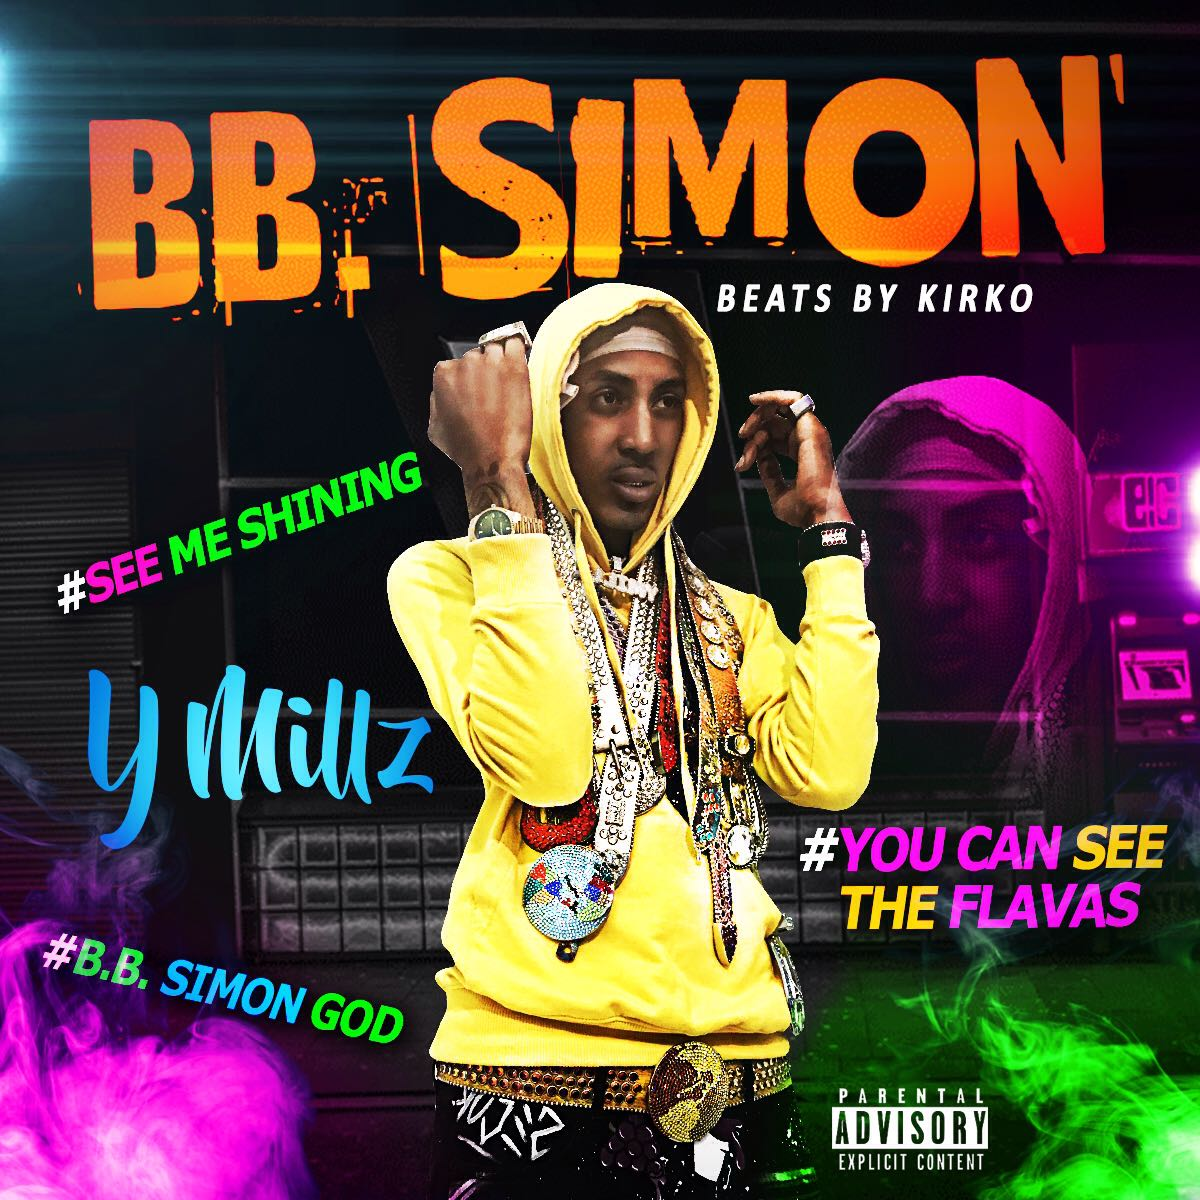 [Video] Y Millz – BB Simon @_YMILLZ